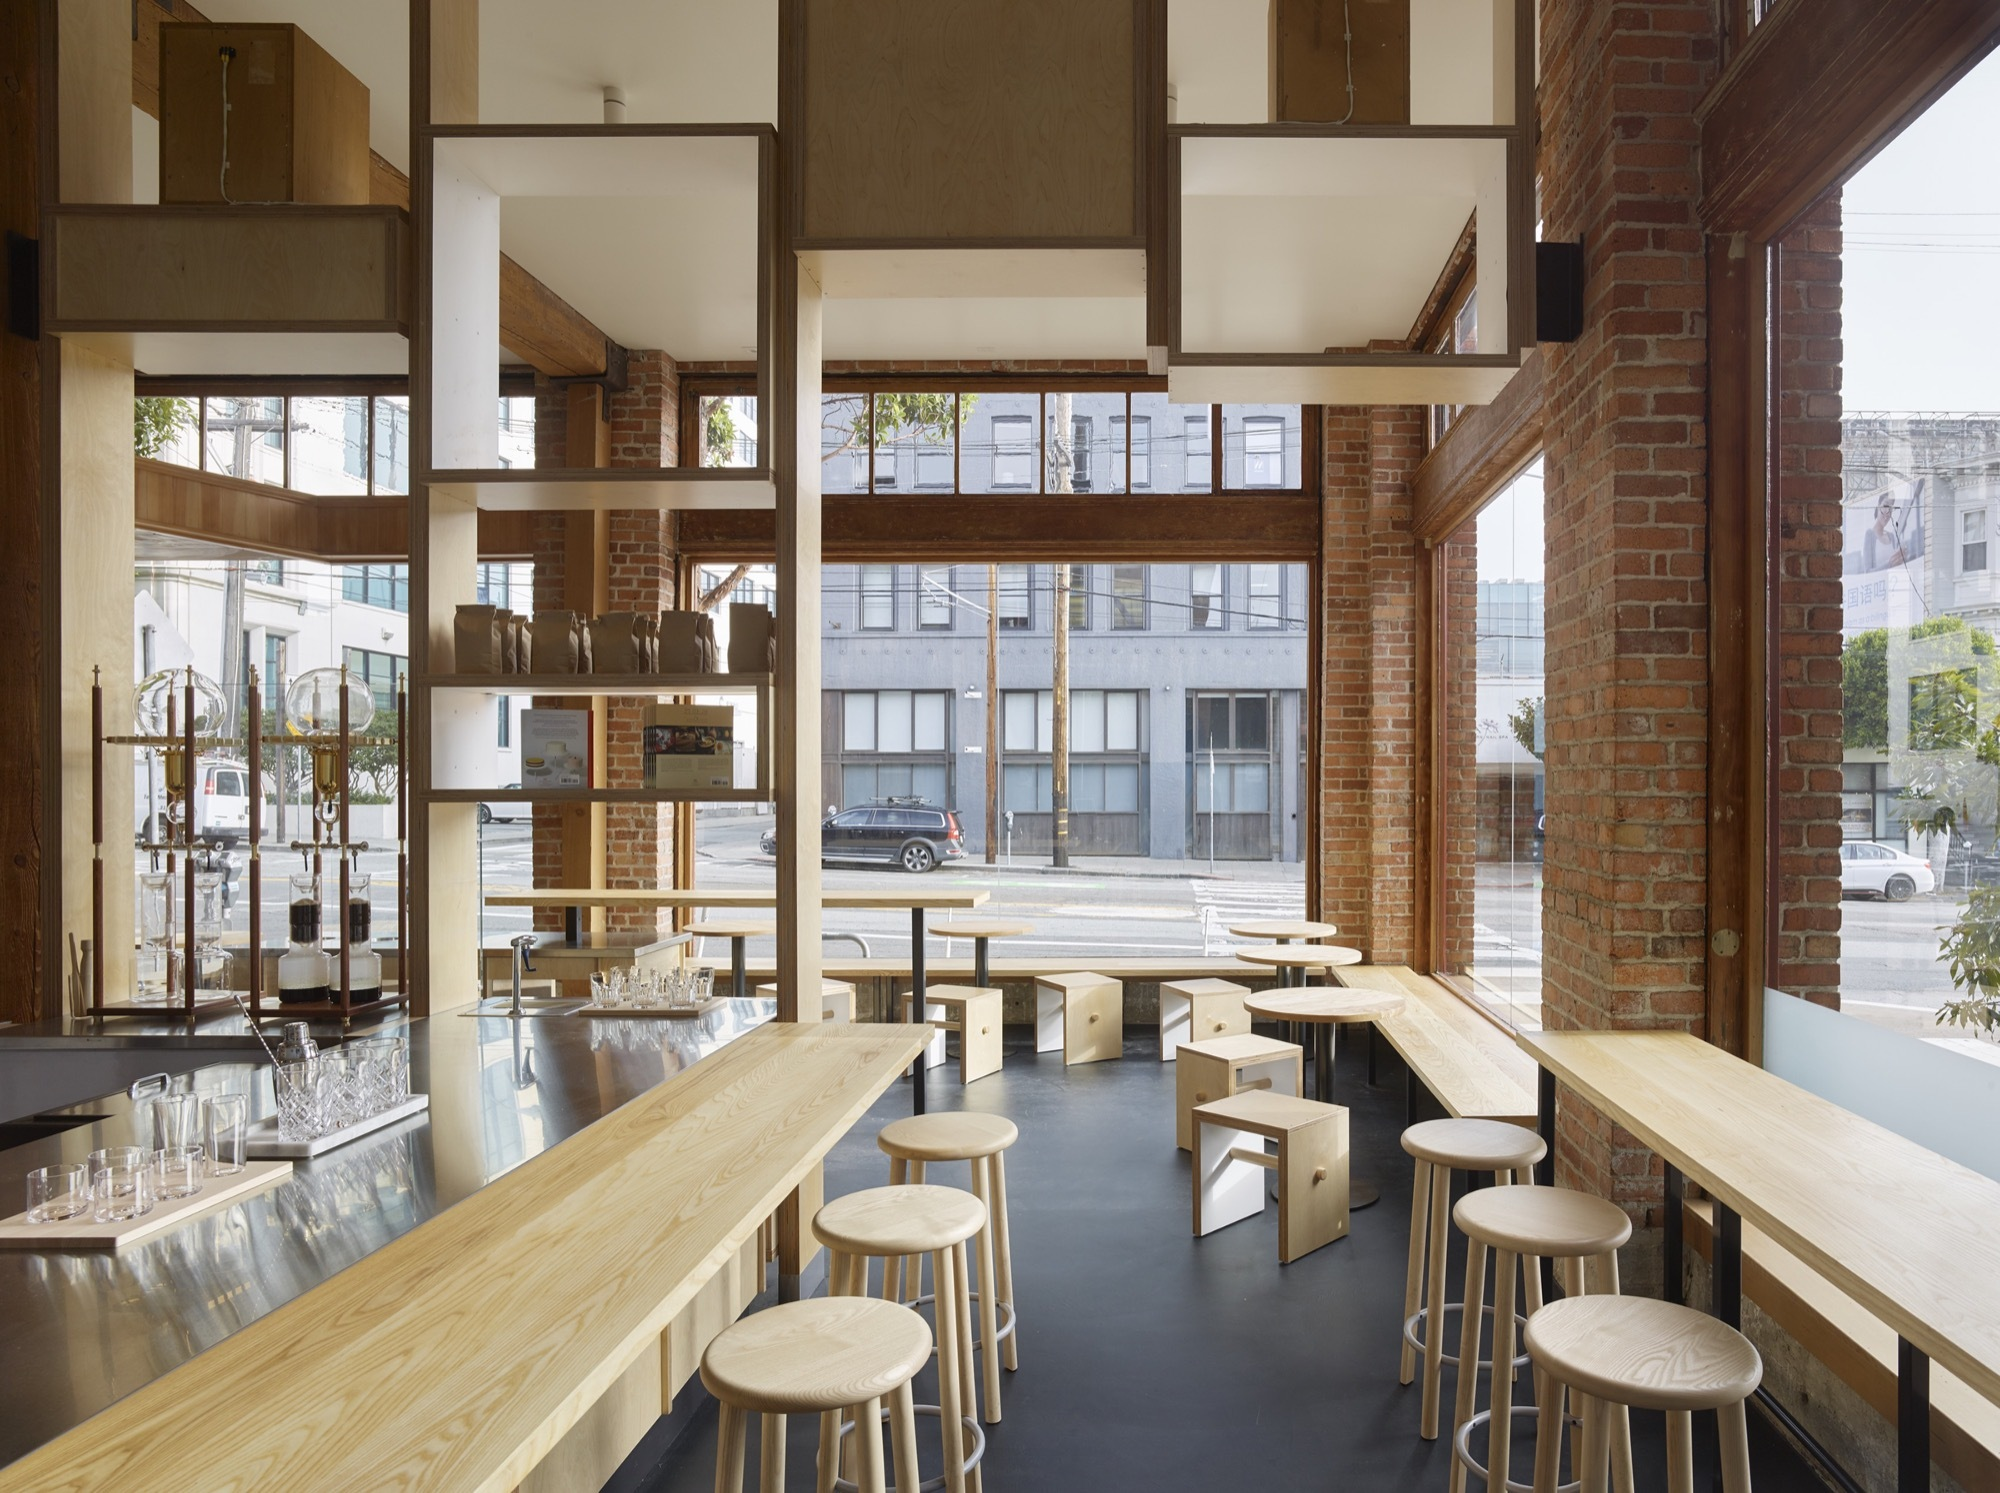 Series-of-wood-and-steel-benches-alongw-ith-wooden-stools-inside-the-cafe